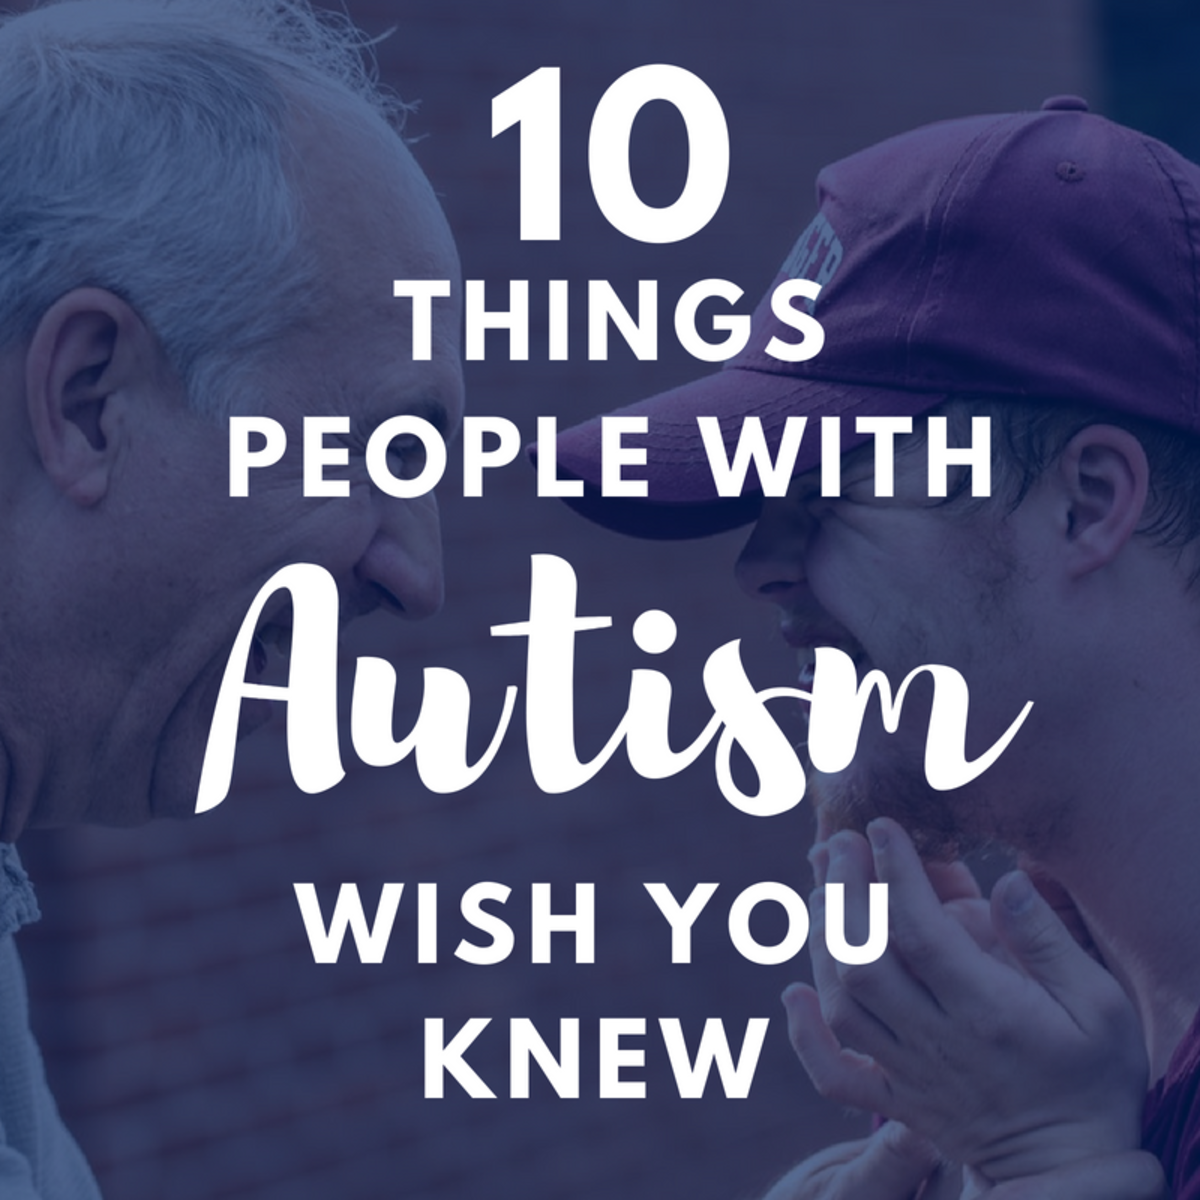 Autistic people are just like us—they just need a little more understanding.